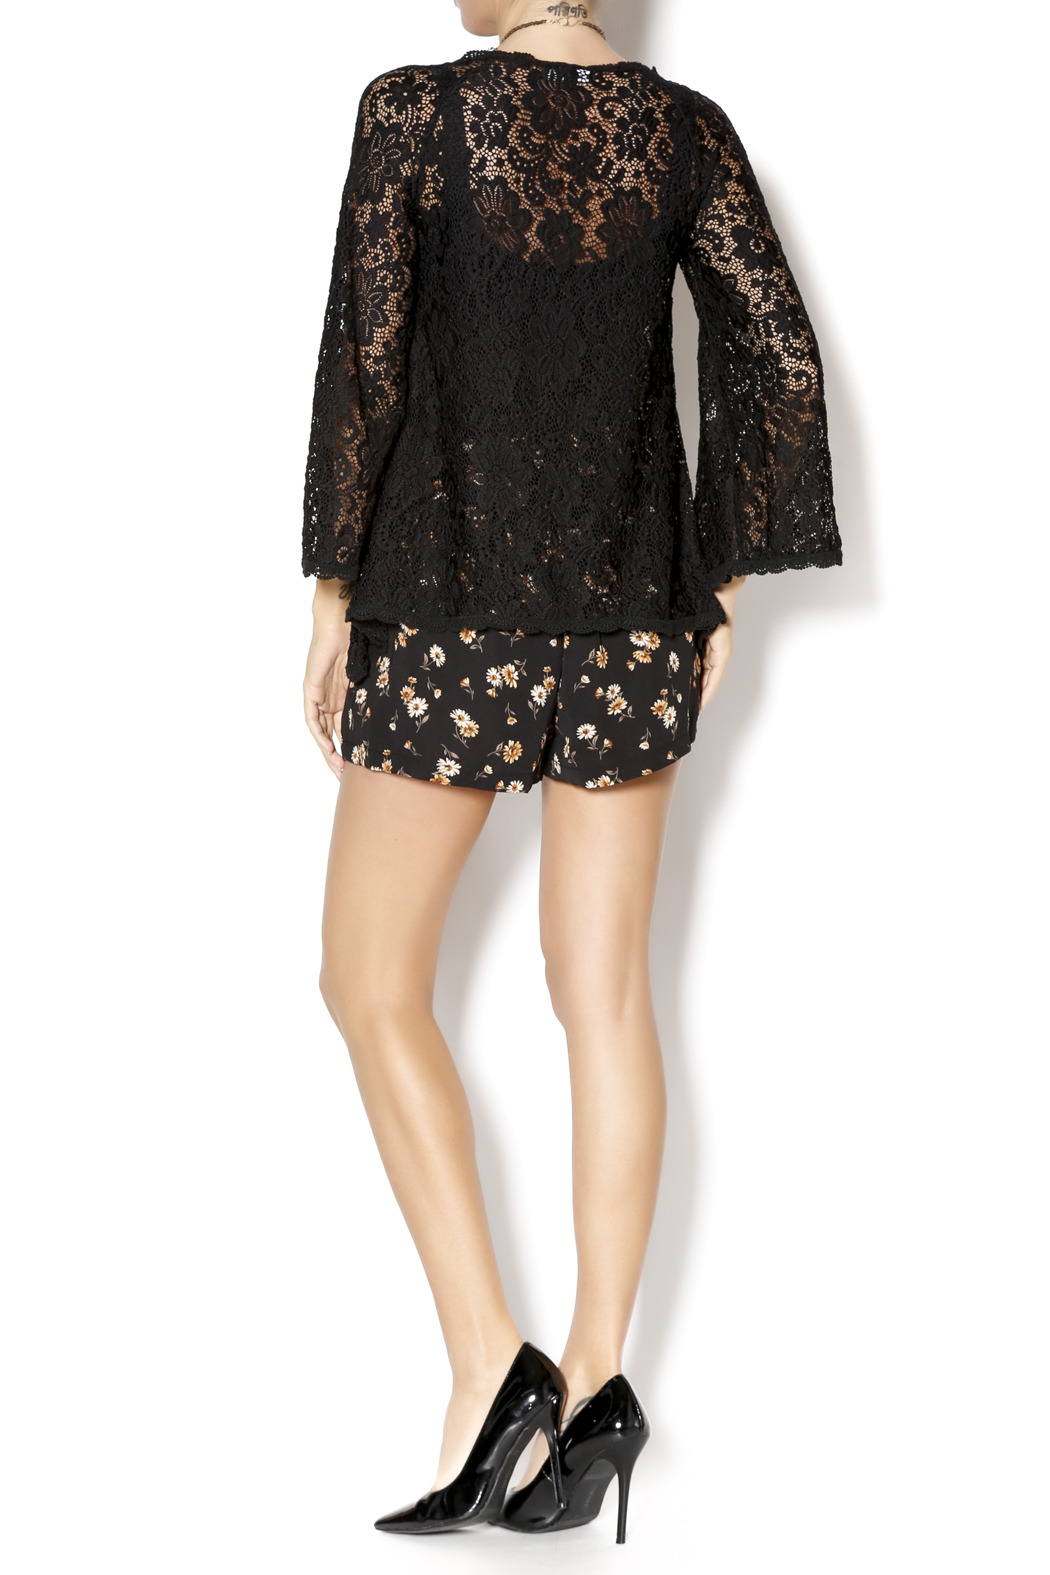 Gina Louise Lace Bell Sleeve Top - Side Cropped Image